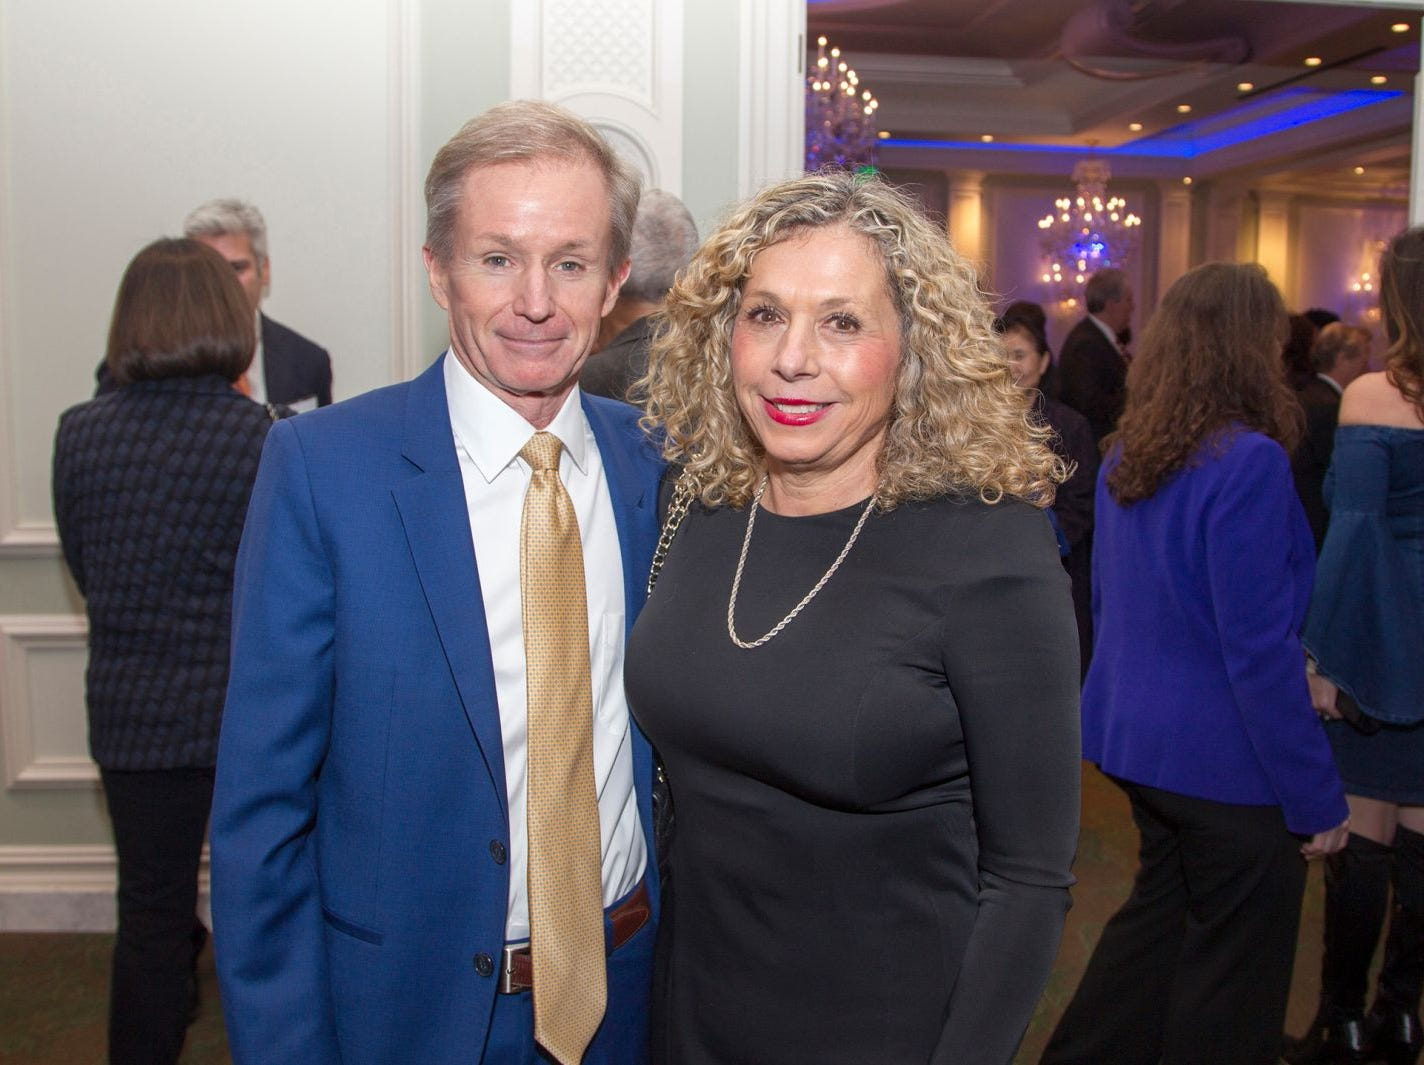 Dr. Stephen and Donna Brunnquell. Englewood Health held its annual Medical Staff Recognition Dinner at Rockliegh Country Club. 01/17/2019